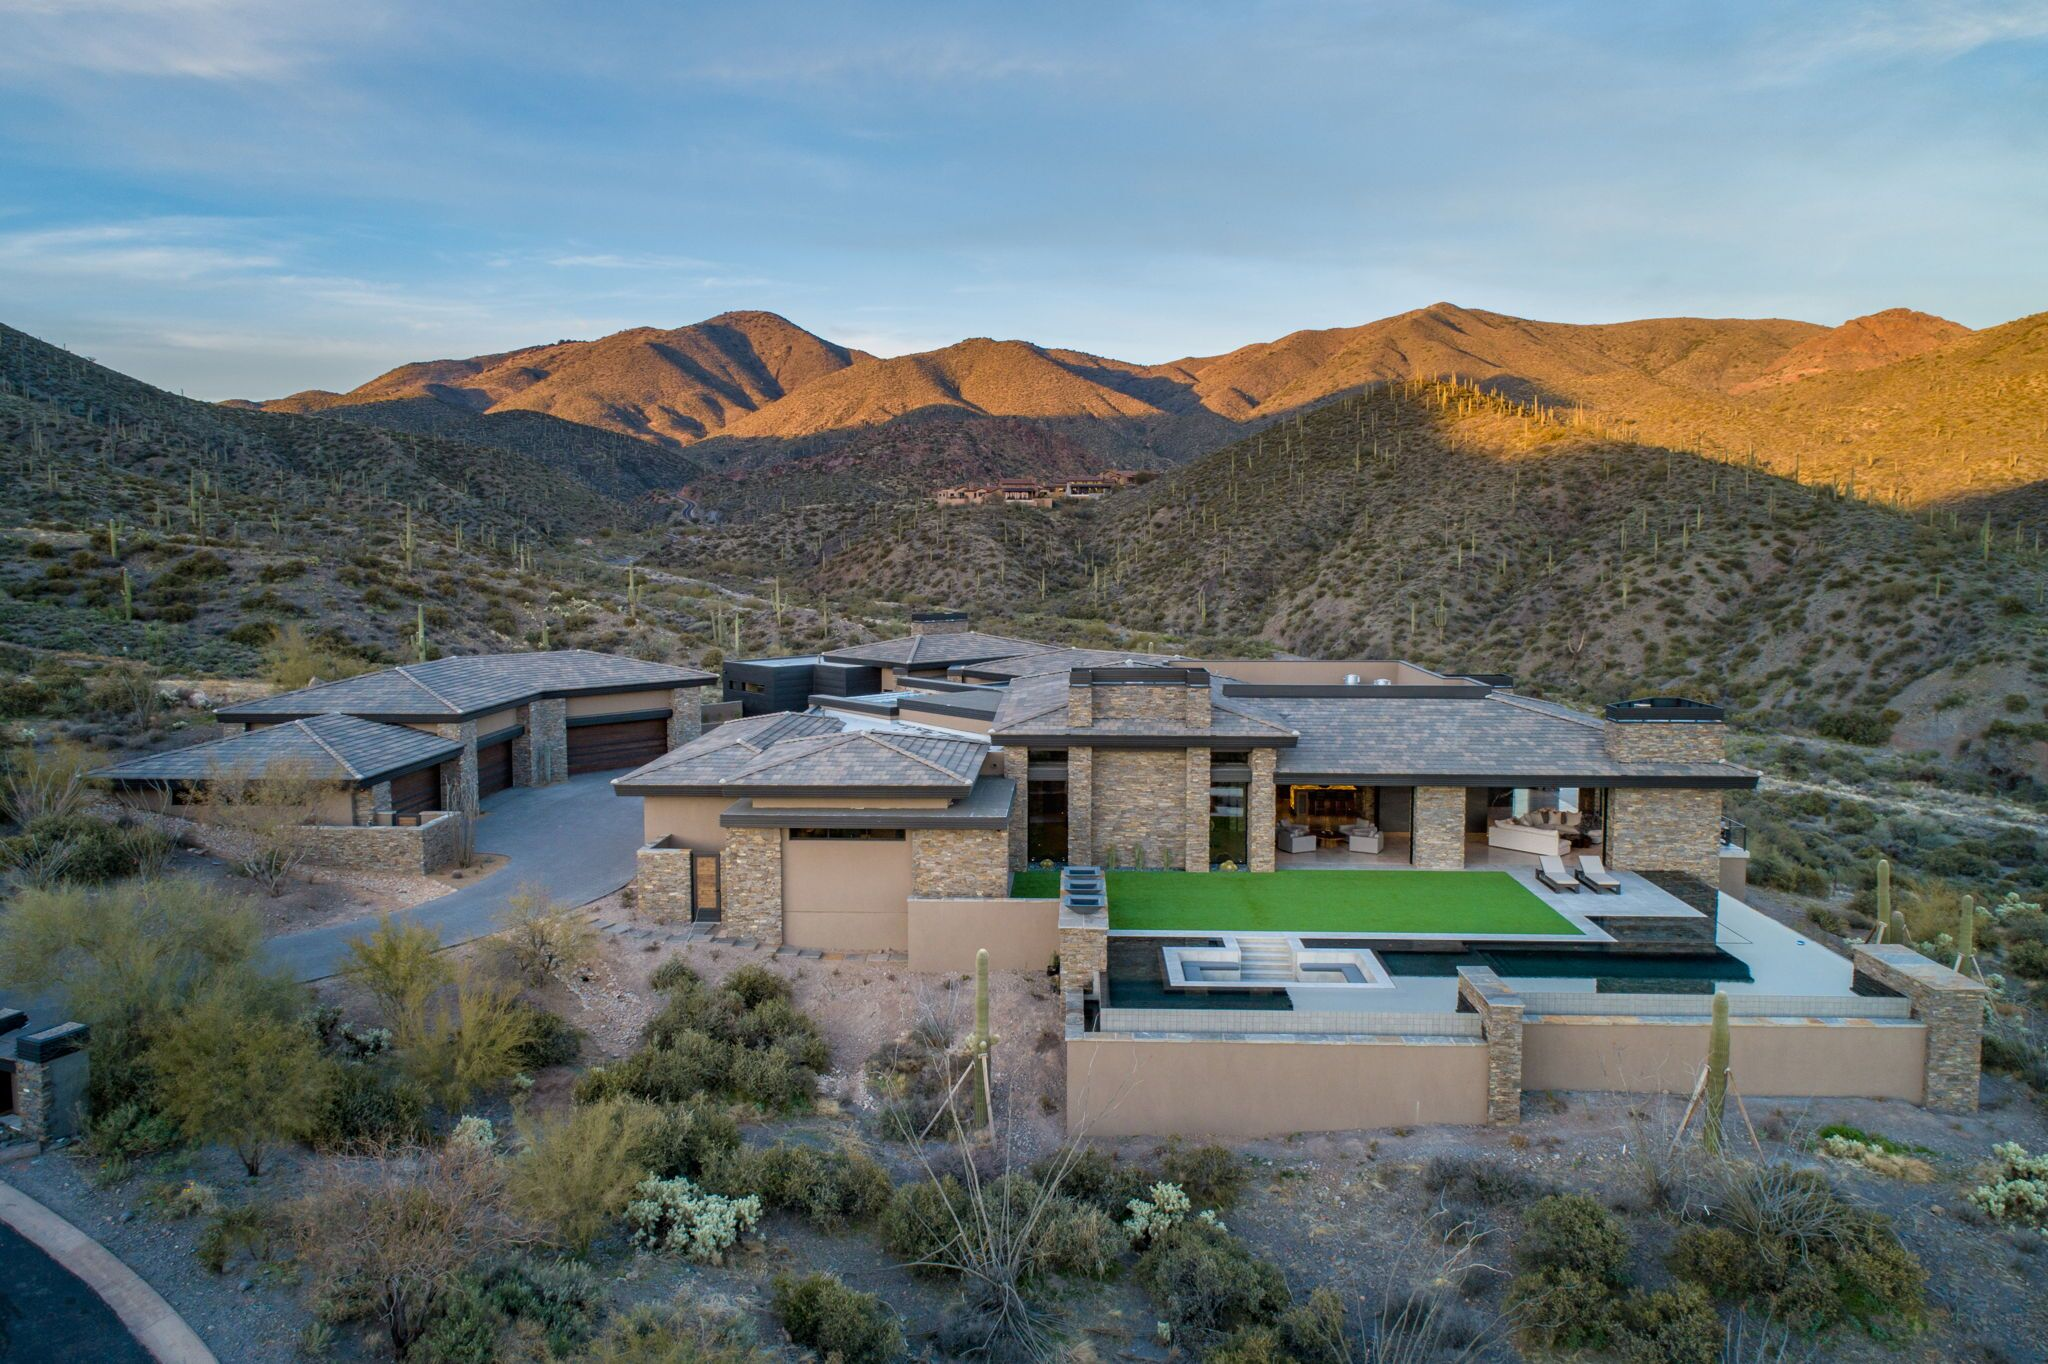 9300+E+Grapevine+Pass+Scottsdale-62-WebQuality-Stunning+Mountain+Setting.jpg